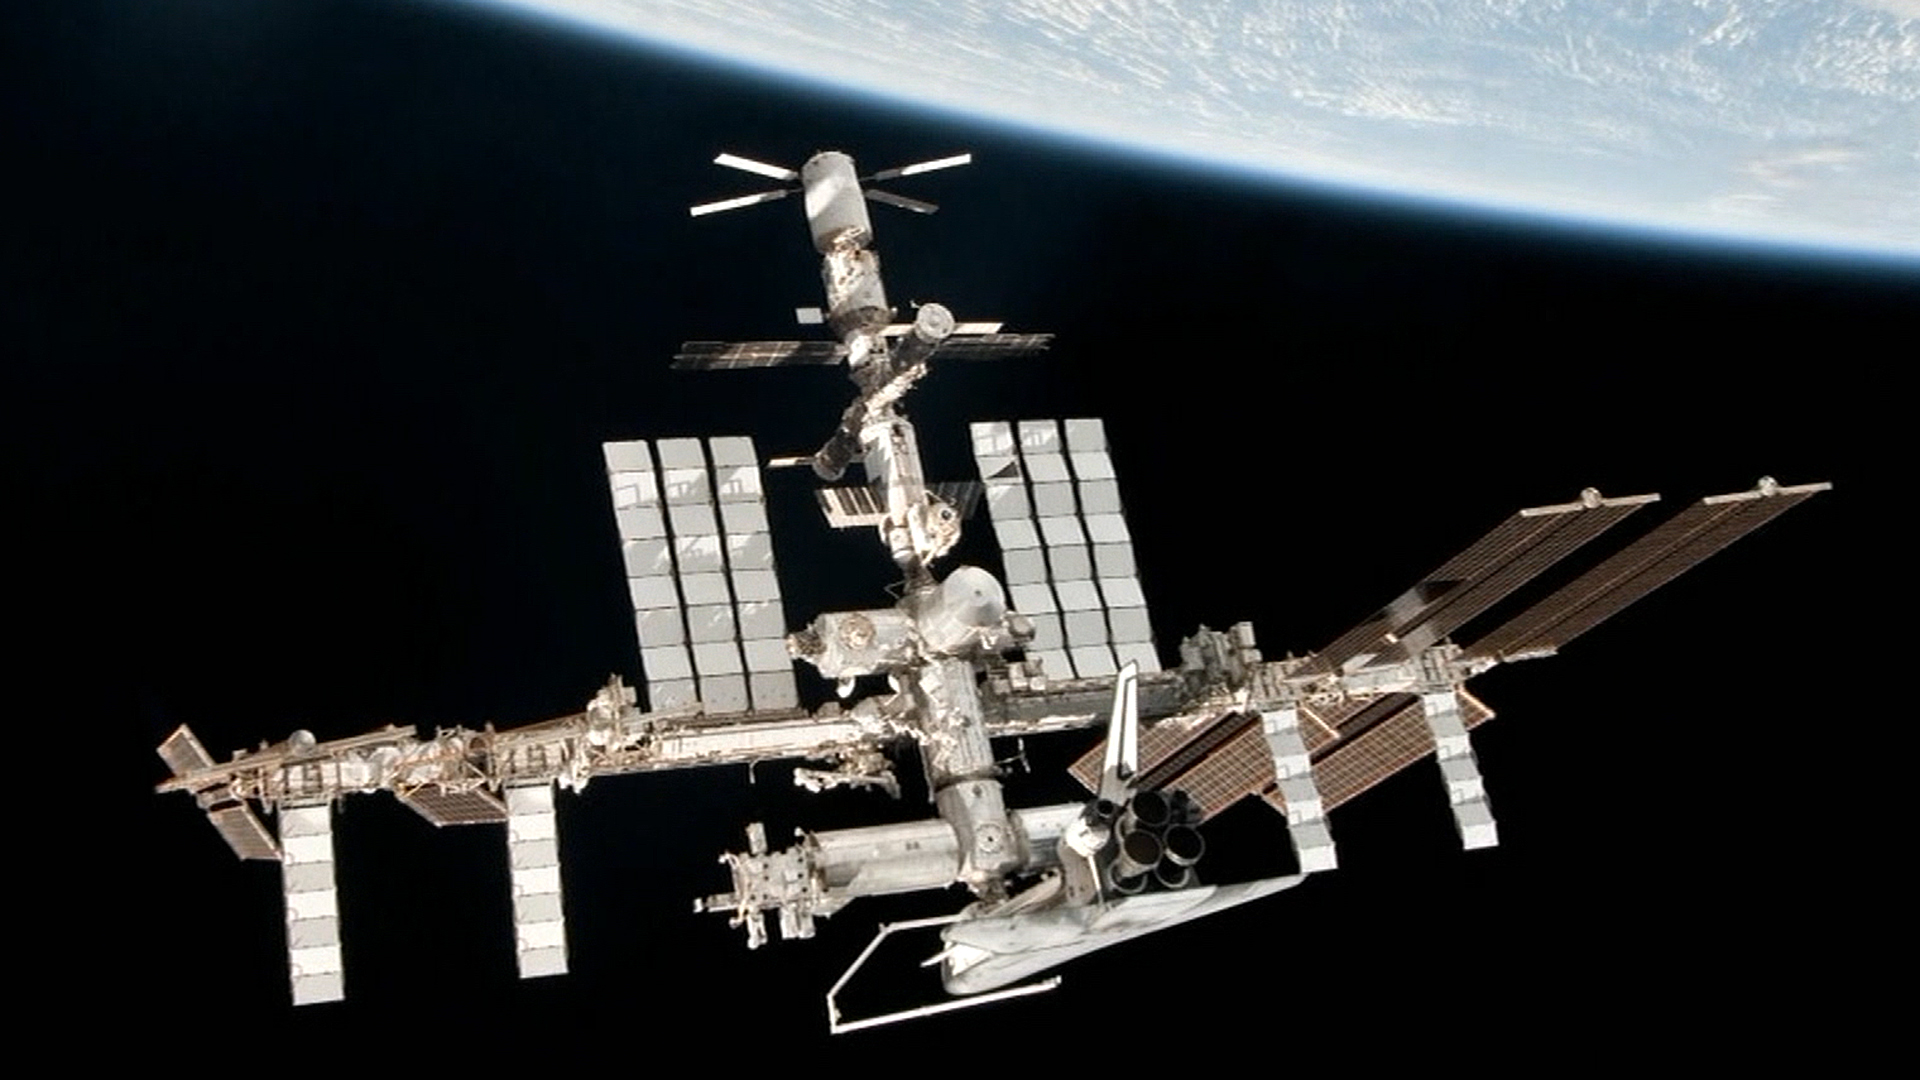 Space station's coolant system crippled, but crew stays safe